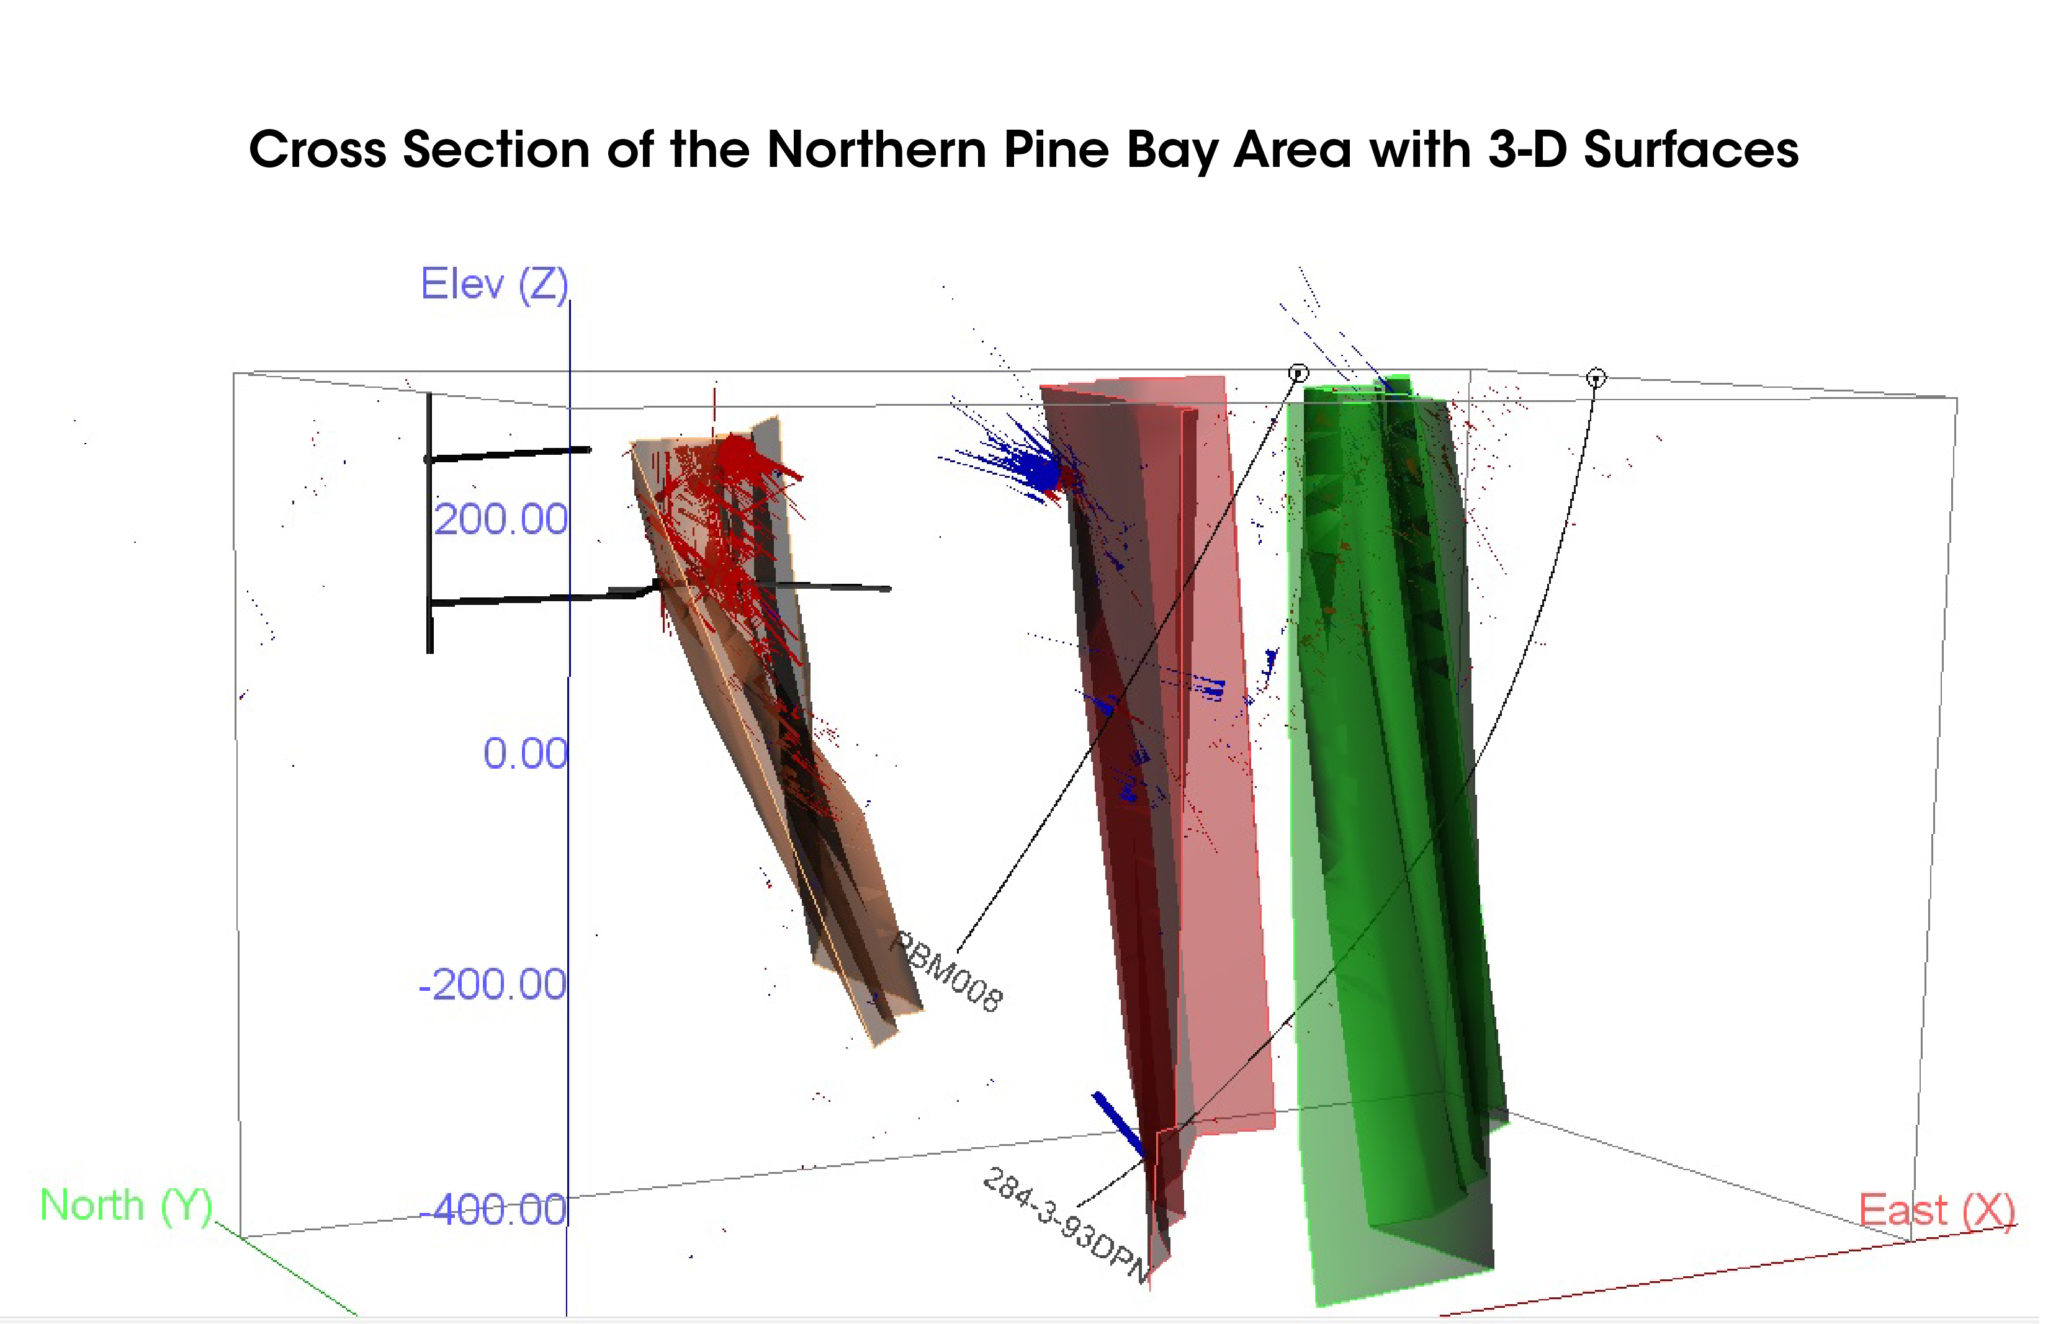 cross-section-of-the-northern-pine-bay-area-with-3-d-surfaces-01